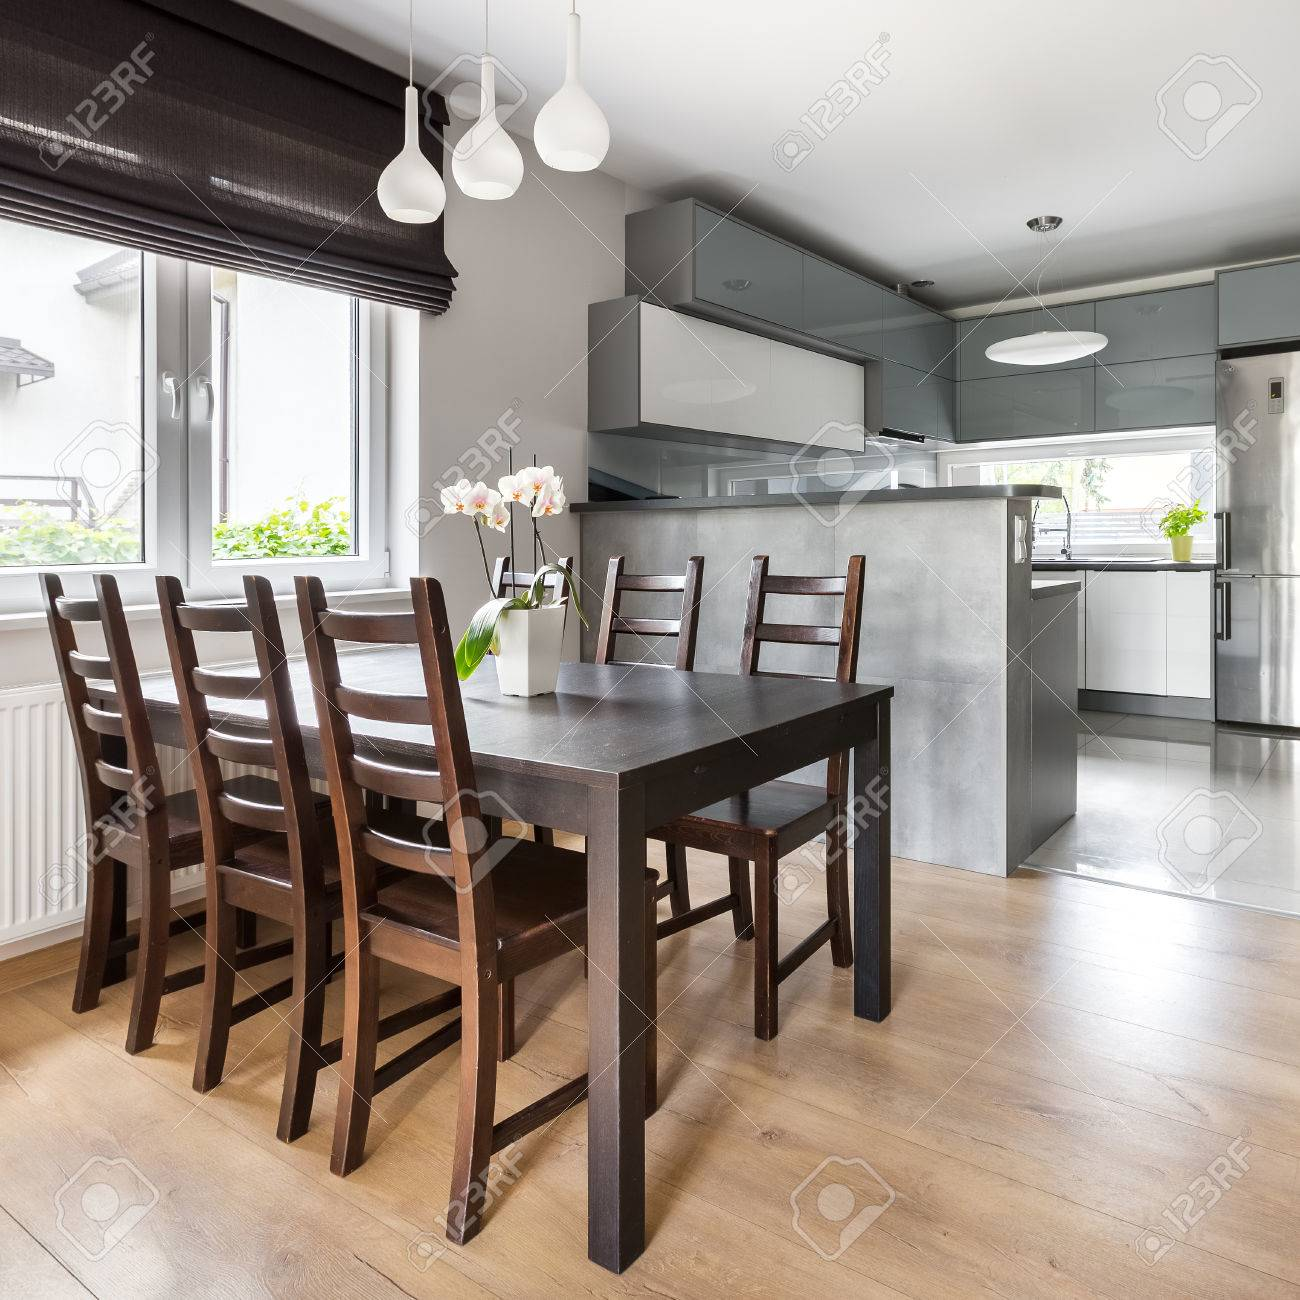 Simple Dining Room With Wooden Table And Light Open Kitchen Stock - Simple-dining-room